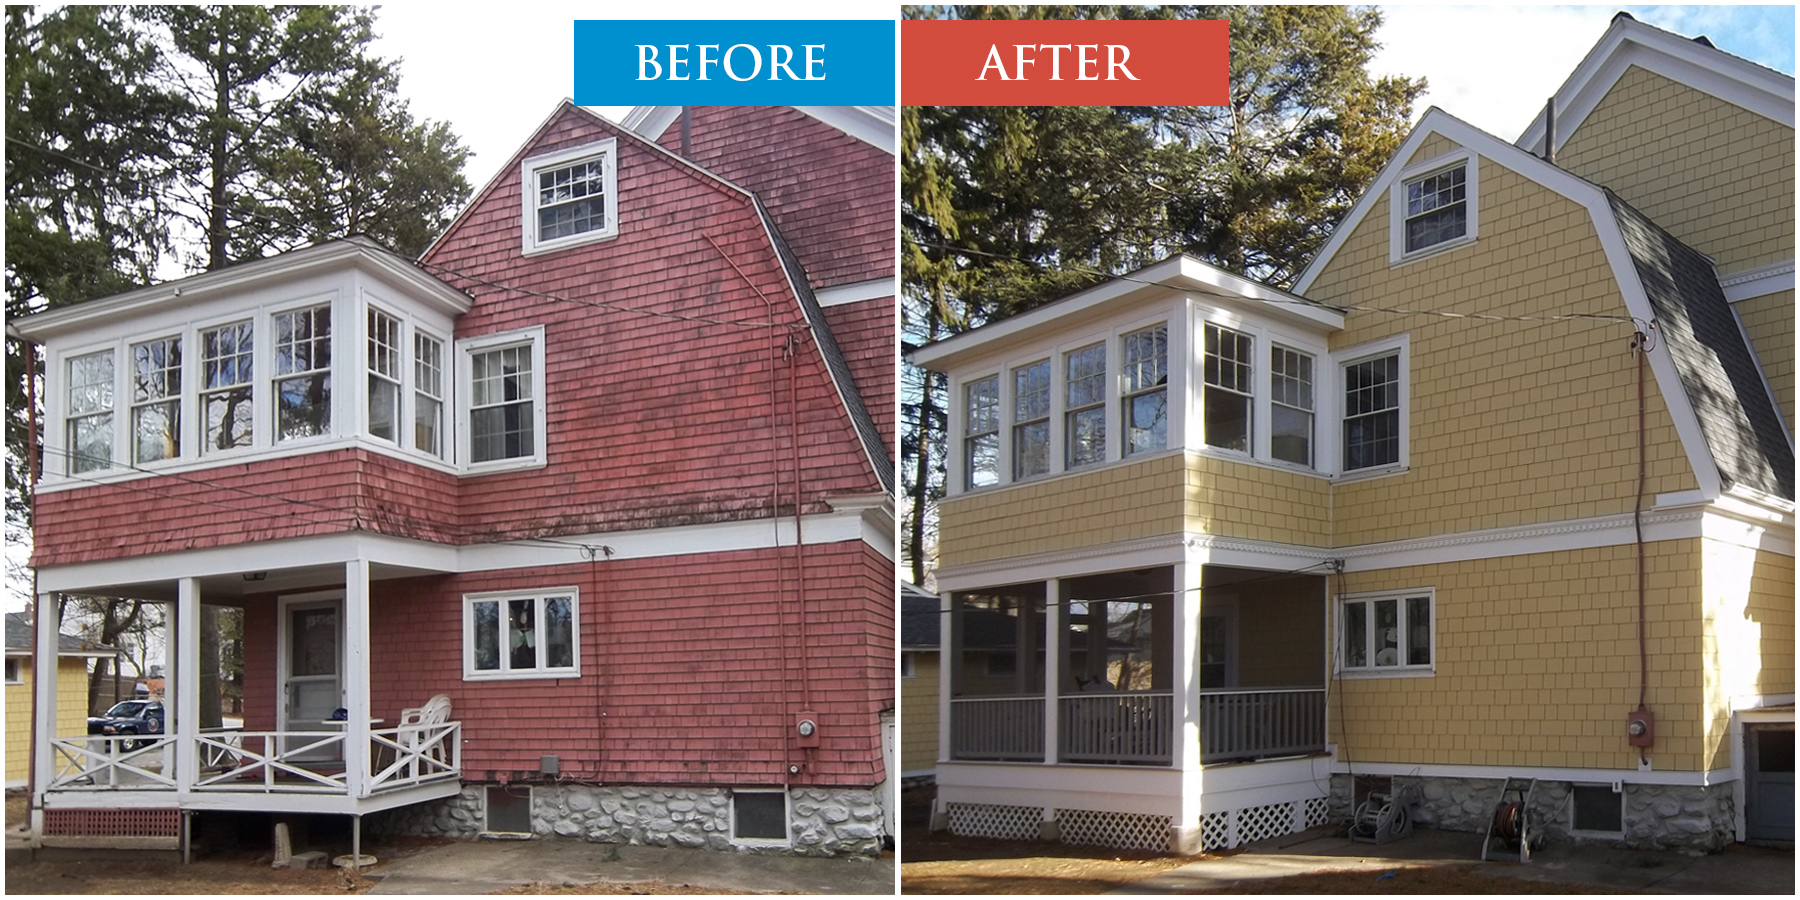 Fiber Cement Siding Boston MA. Before and After Sample